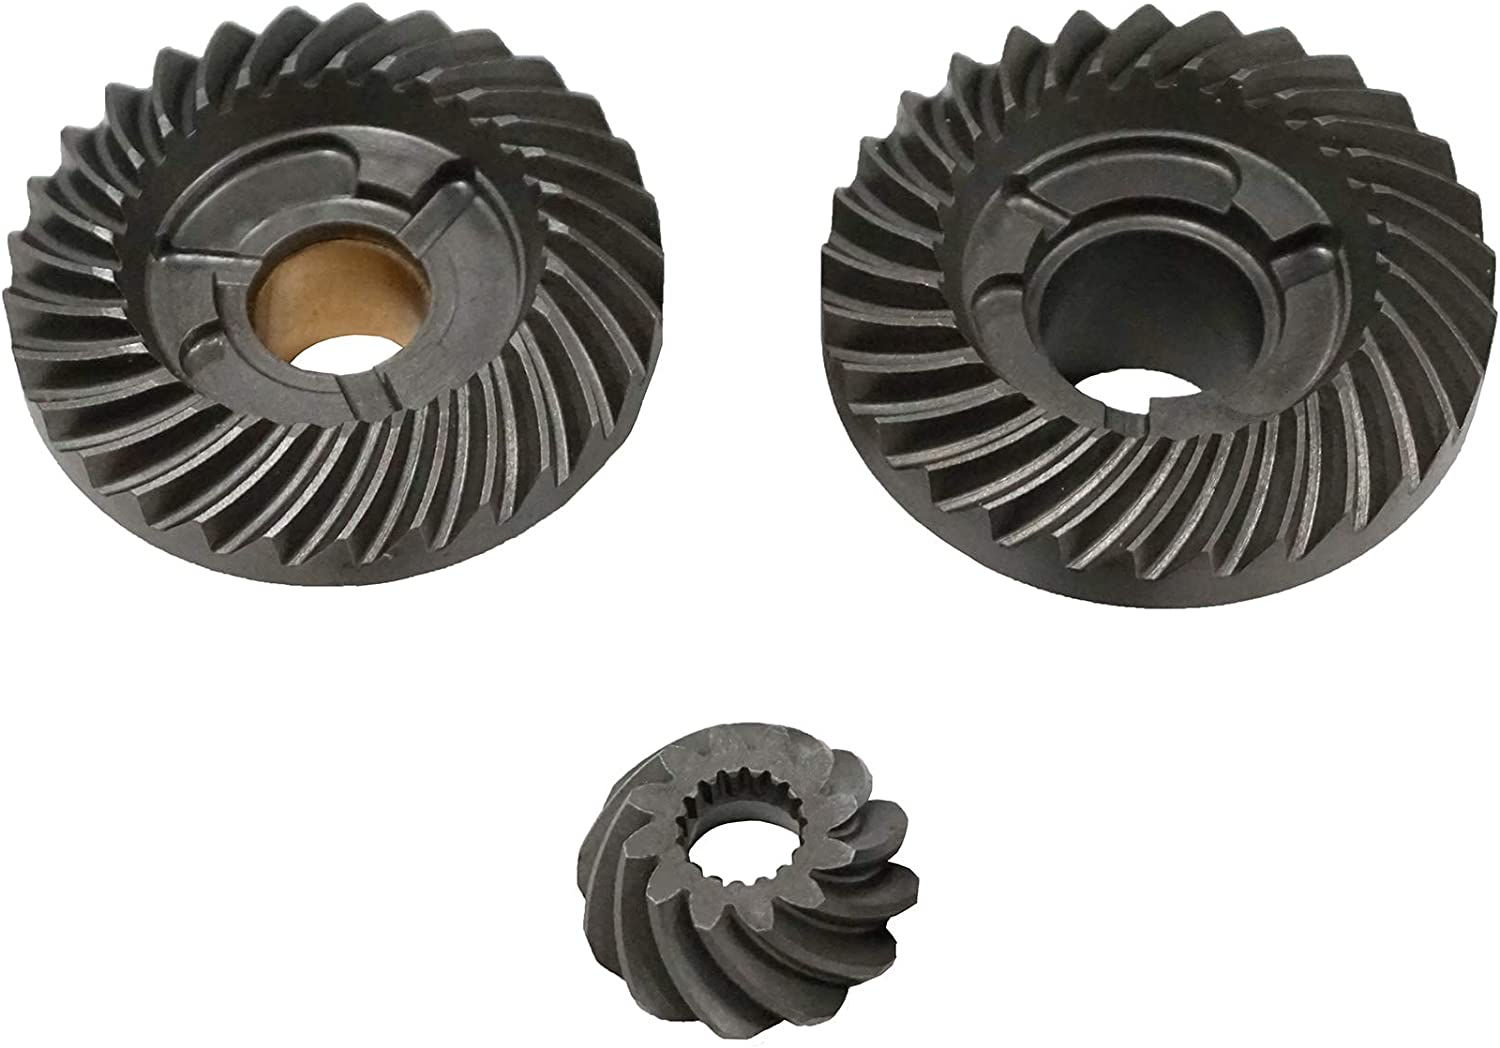 Lower Unit Gear Set, 1979-1988 Johnson and Evinrude 40, 48, 50, 55, and 60 hp Outboards 433570